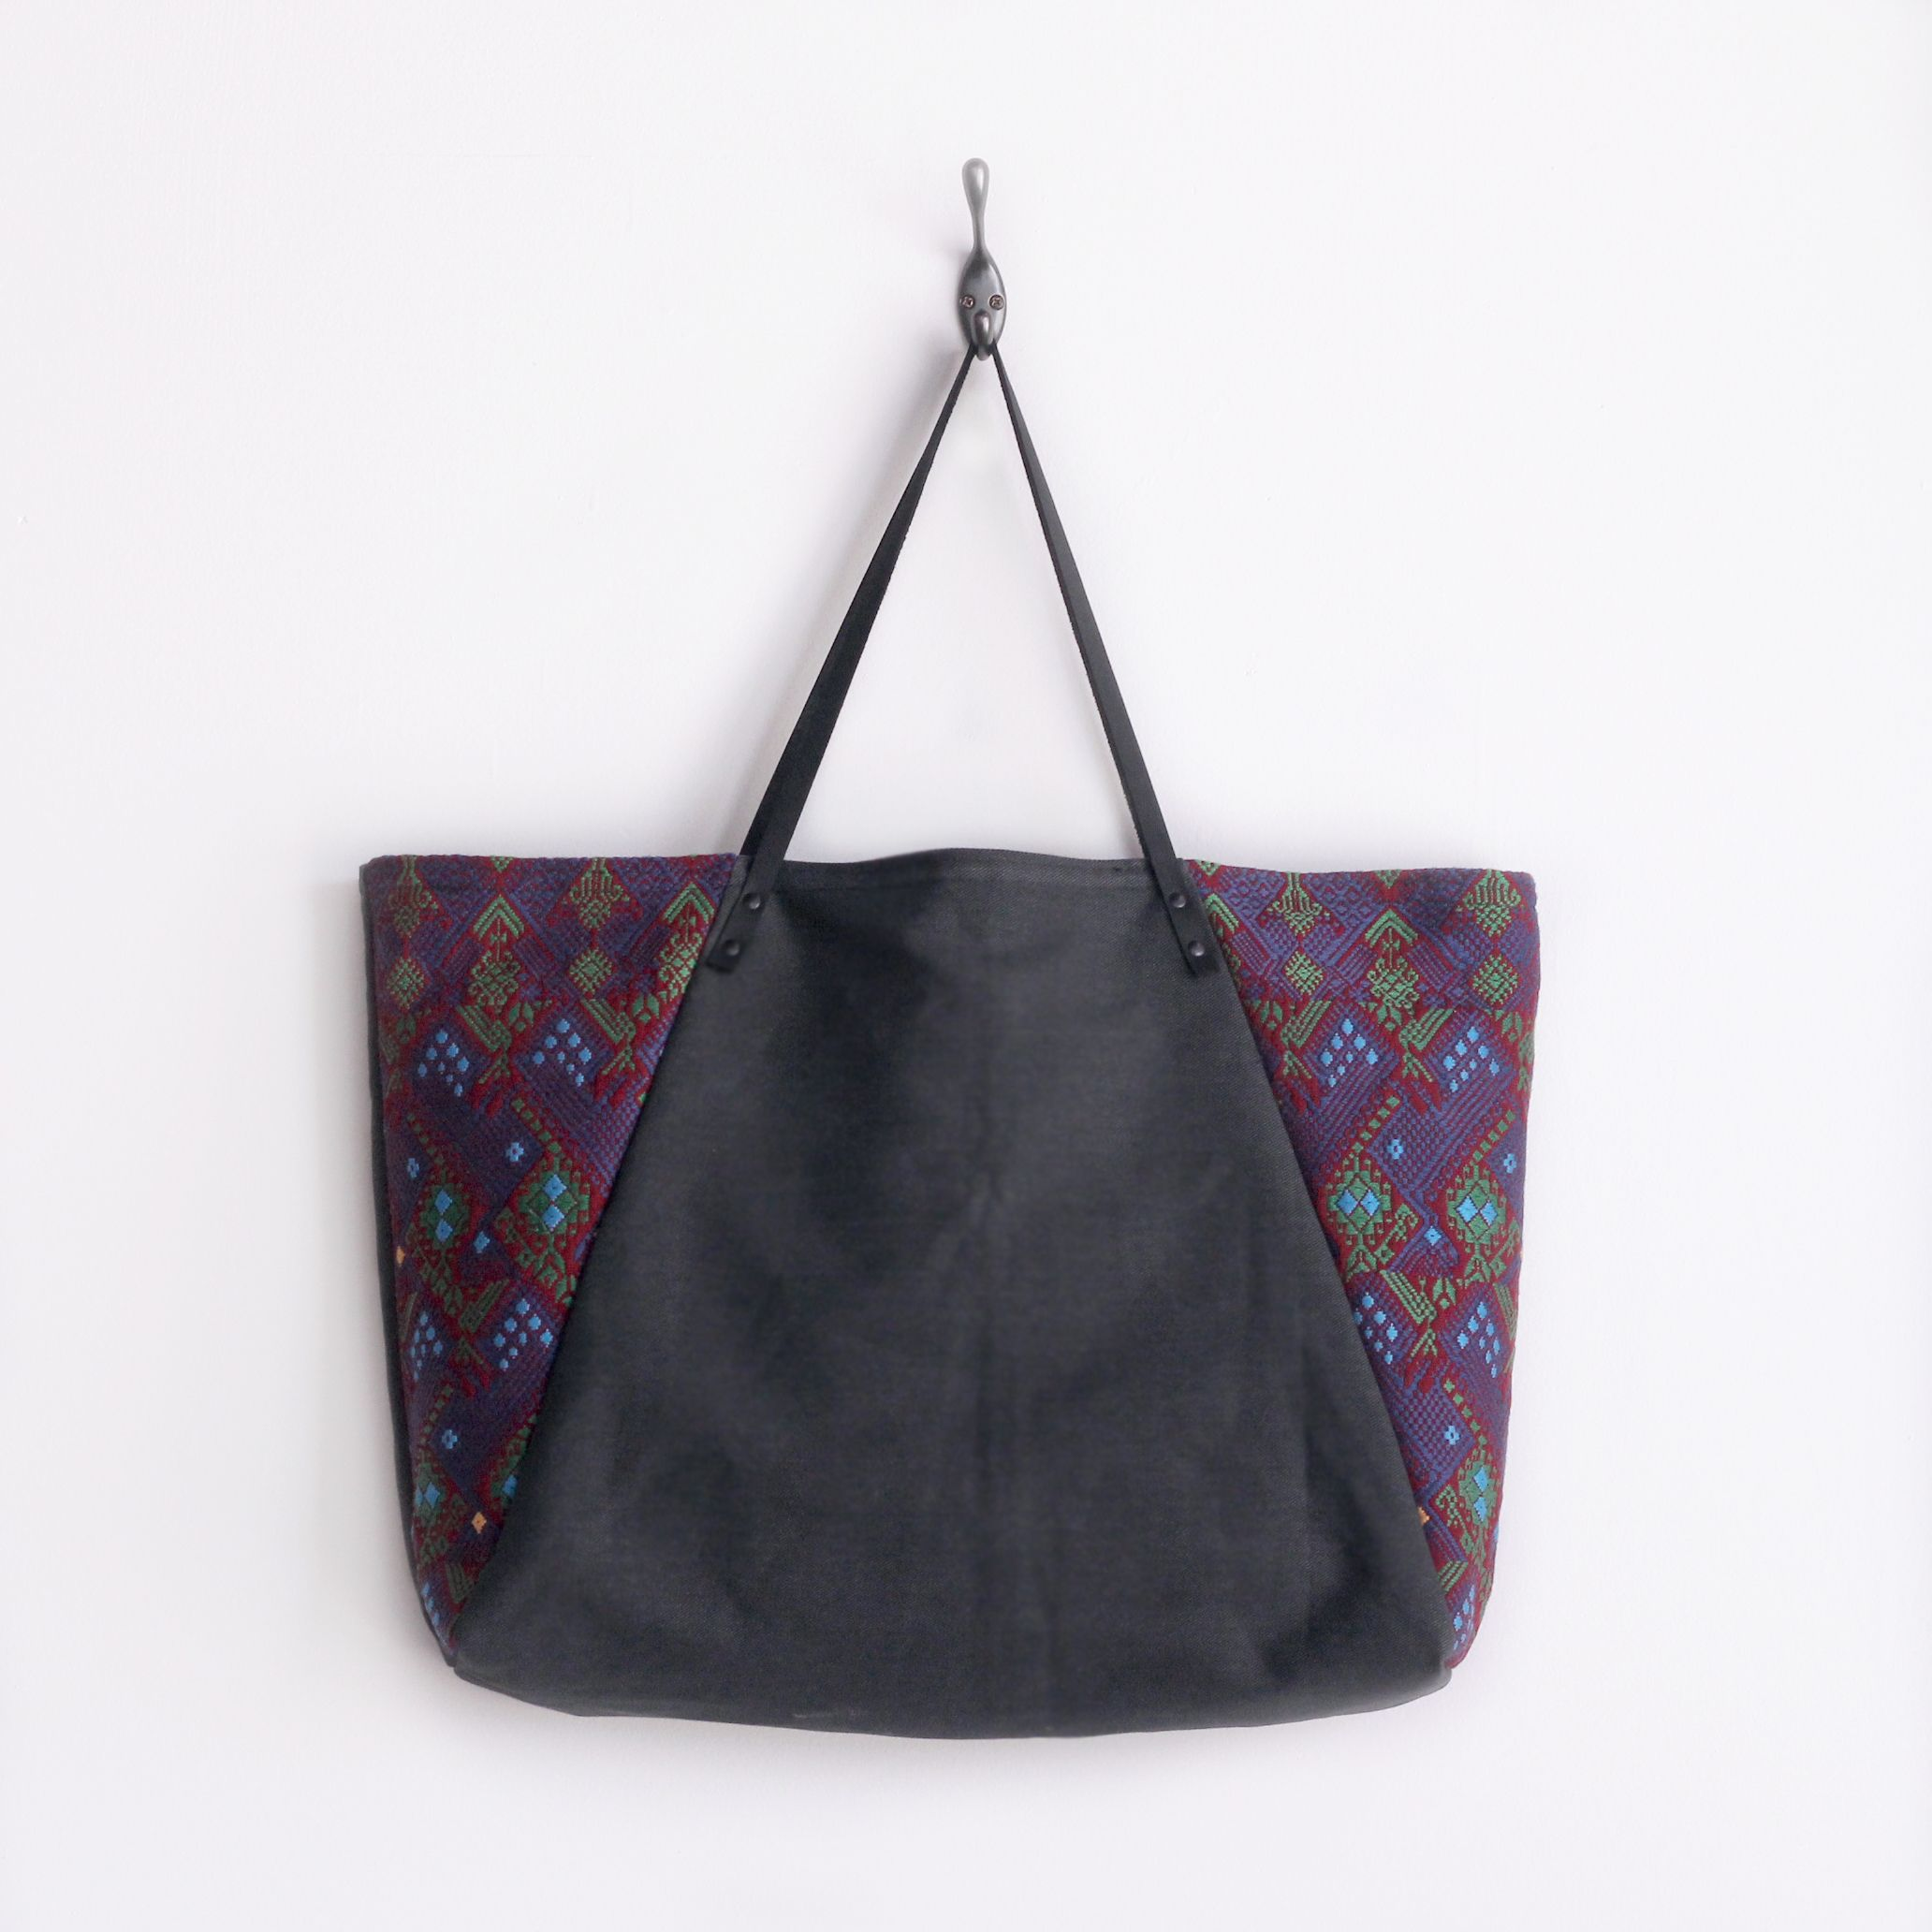 anne b designs and WILCOX Boots brings you a collection of classic bag silhouettes with a taste of authentic textiles from Guatemala Don't be fooled by it's elegant appearance, but just like WILCOX leather boots, this durable canvas tote can take on a full days work. The Guatemalan textile makes a stunning statement against the charcoal gray canvas exterior. Lined with camel tan, 2 pockets that extend the full length of the tote, and an additional splash of Guatemala on an inter...